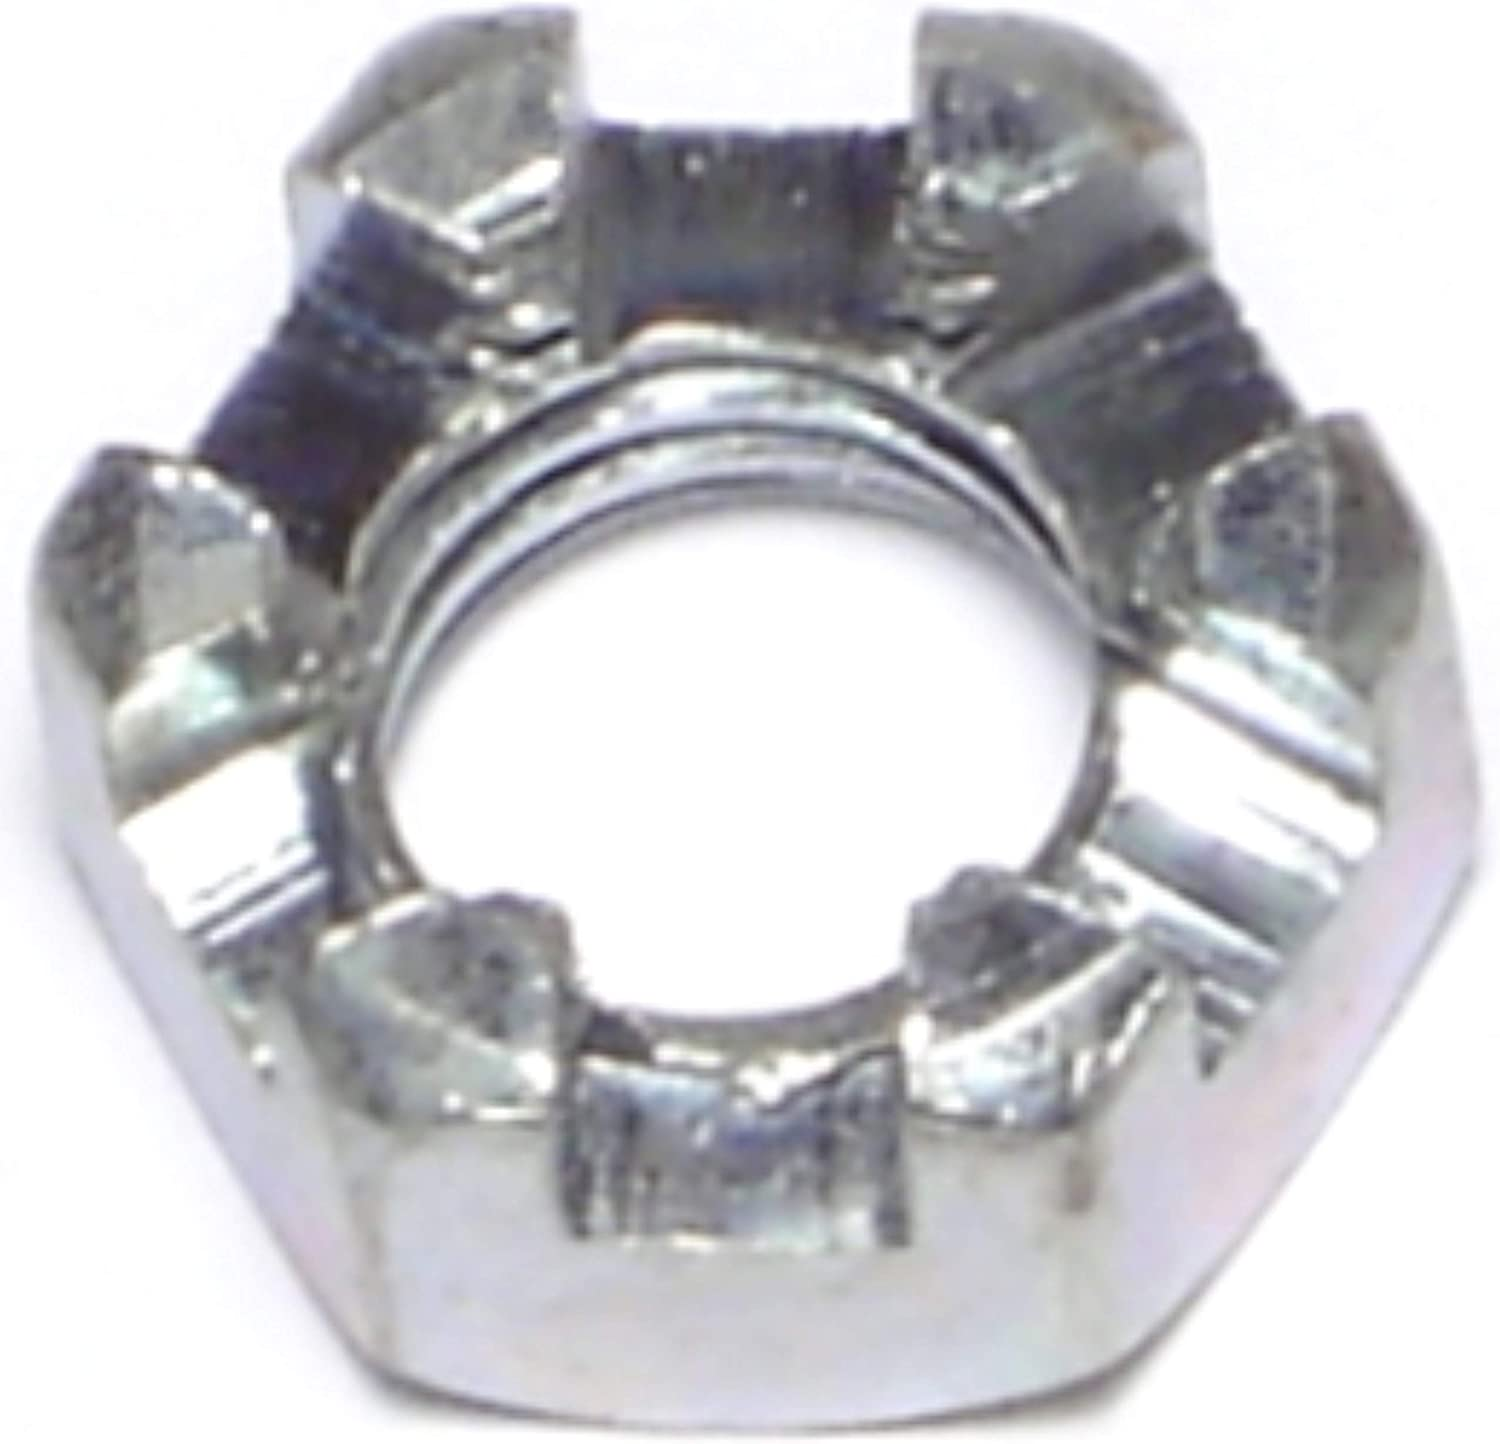 Piece-6 1//2-13 Hard-to-Find Fastener 014973312534 Coarse Slotted Hex Nuts